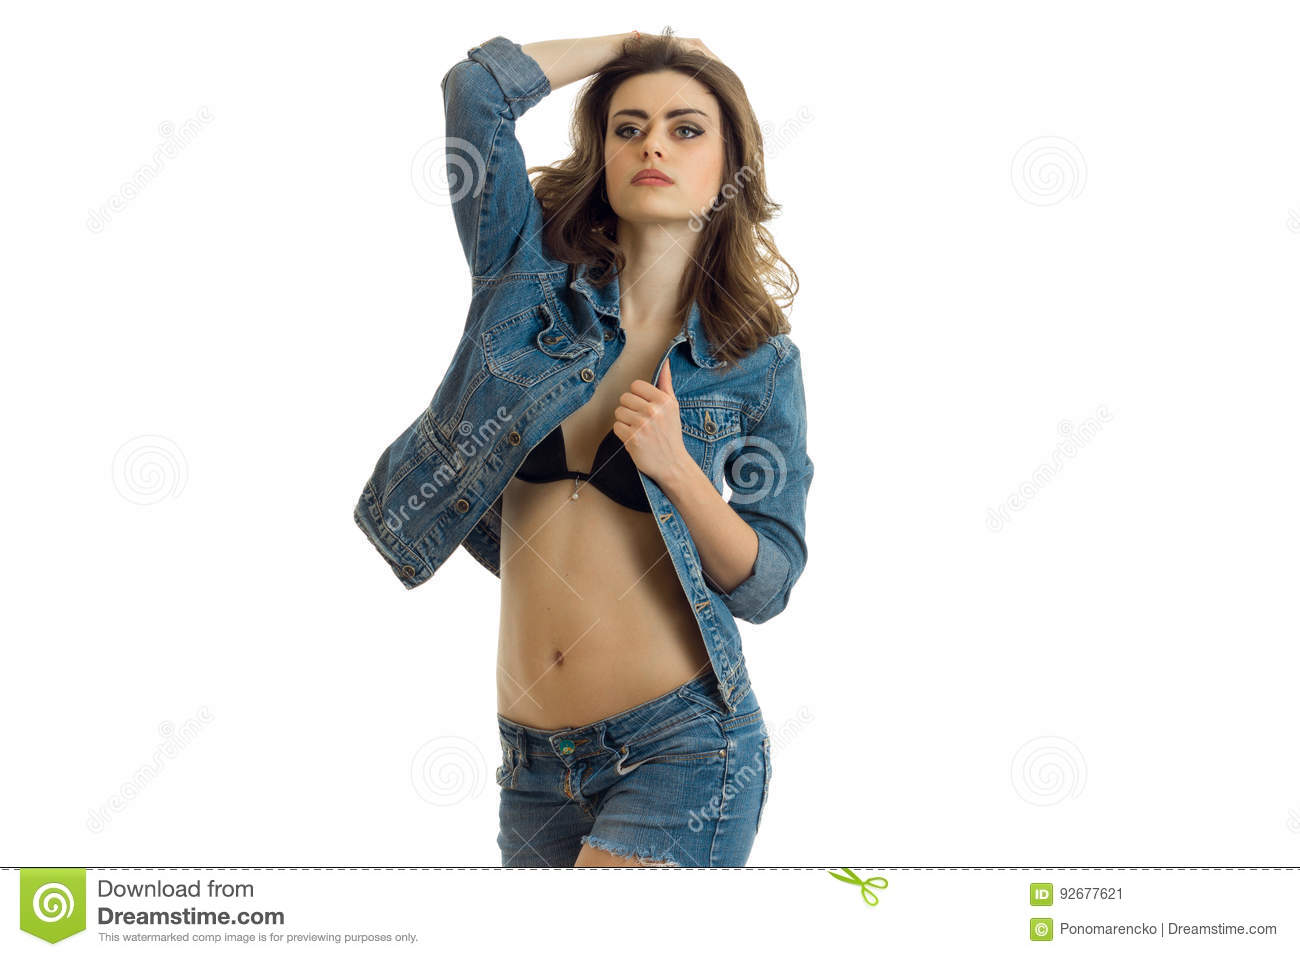 19c963d898 Beautiful girl with a naked belly and denim jacket posing lifting a hand to  head isolated on white background